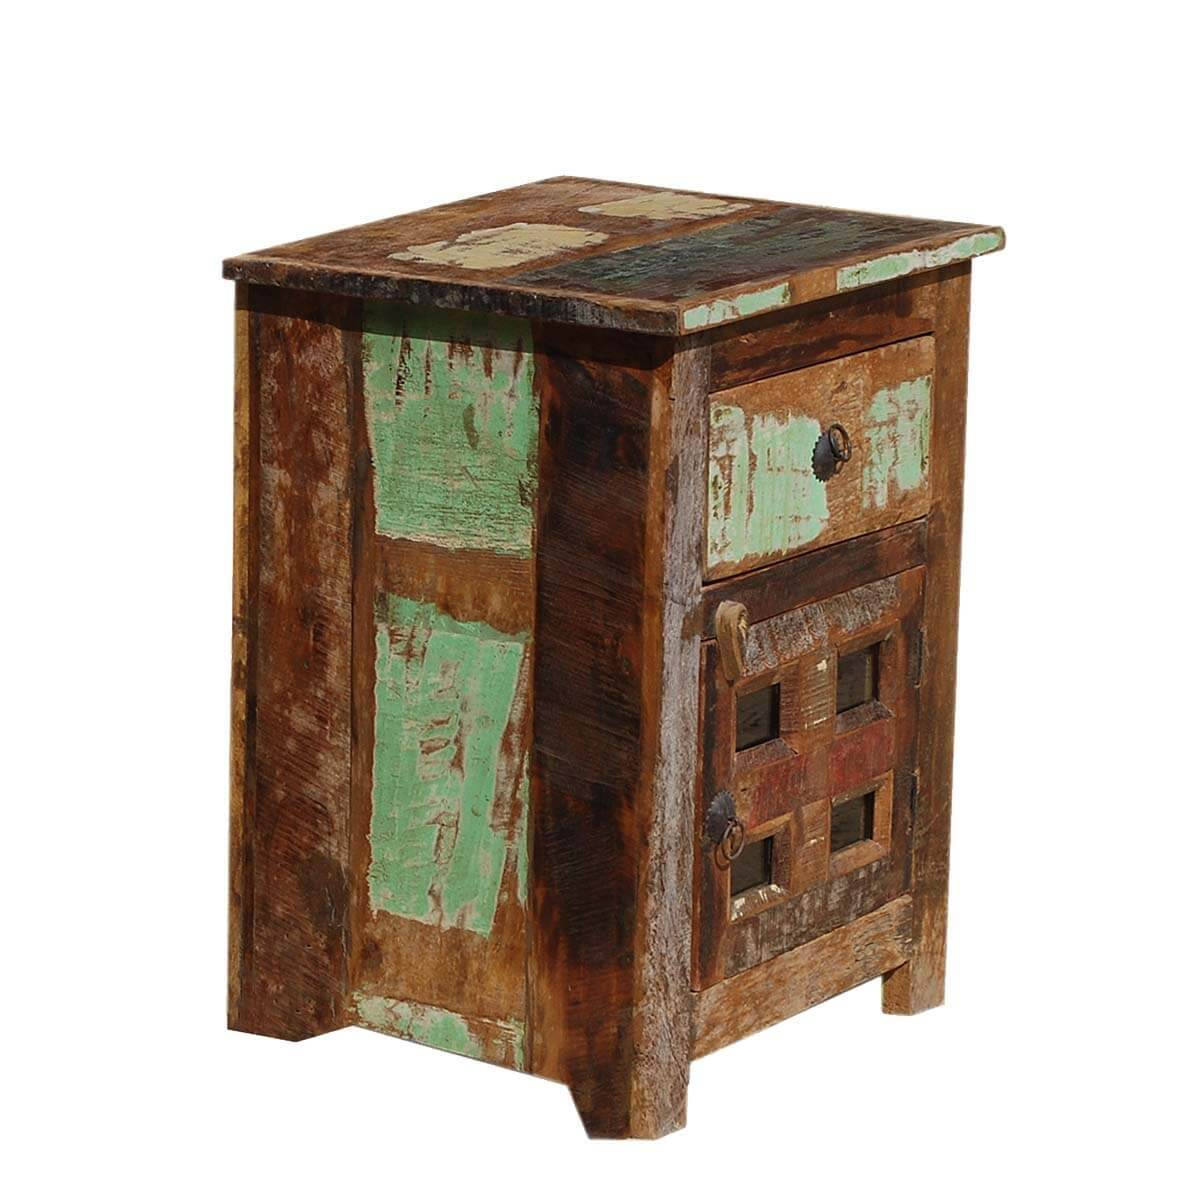 Appalachian Rustic Weathered Mango Wood End Table Nightstand